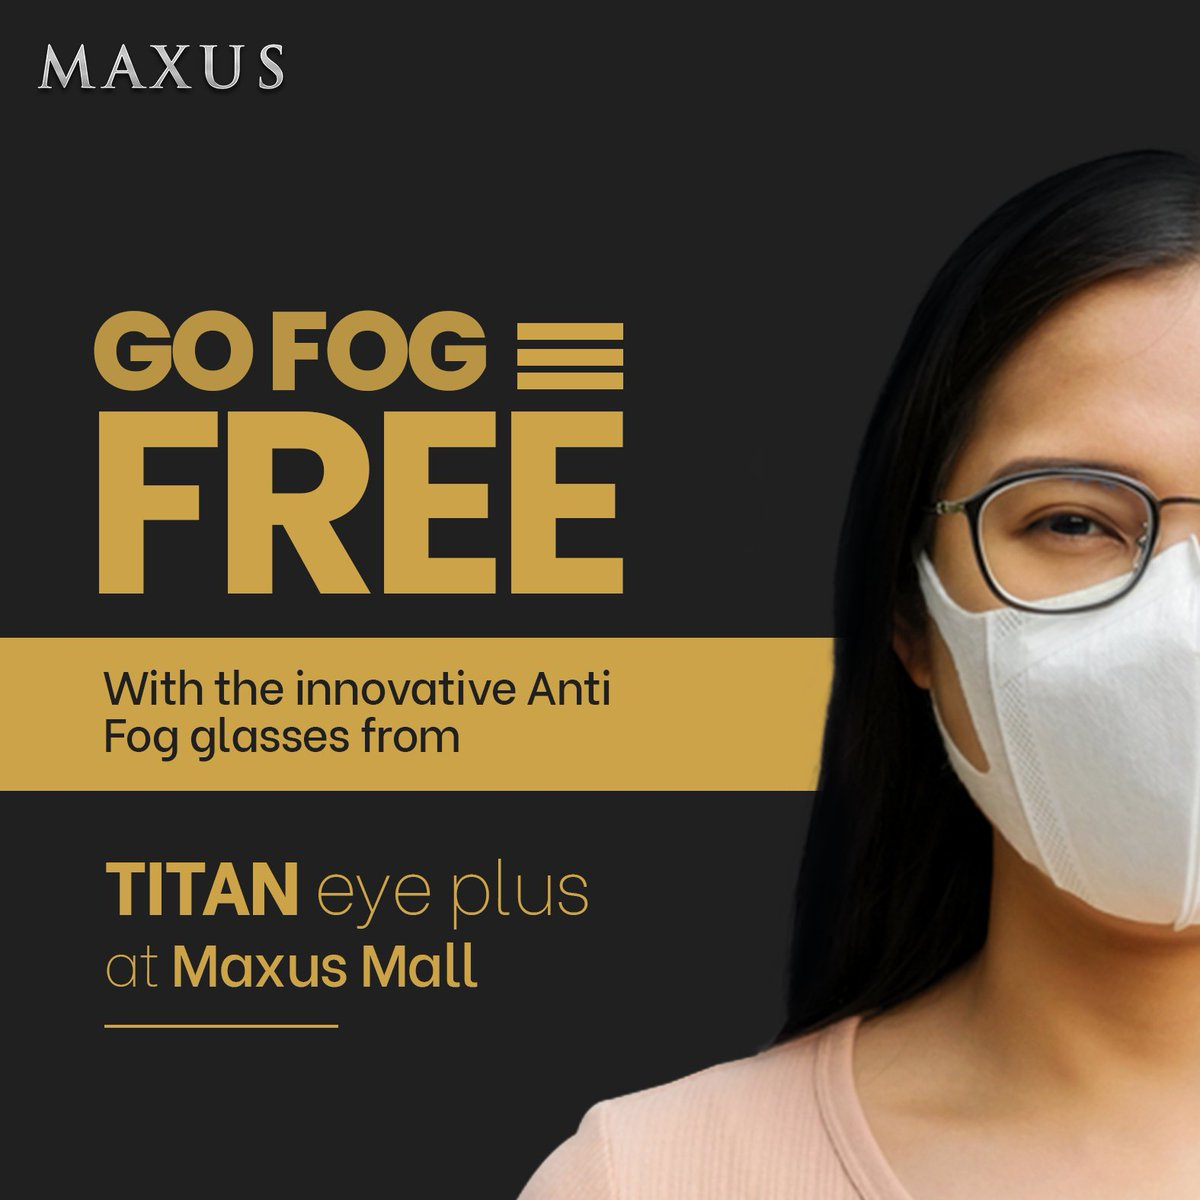 Planning to travel to Hill Station? Visit us for the best glasses in town. See you soon!  #MaxusMall #ShoppingMalls #ShoppingAddict #Fashion #Lifestyle #Friends #Family #Happiness  #Titan #TitanEyePlus #Spectacles  #EyeGlass #EyeWear #EyeWearFashion #Offers #SafeShopping #bhfyp